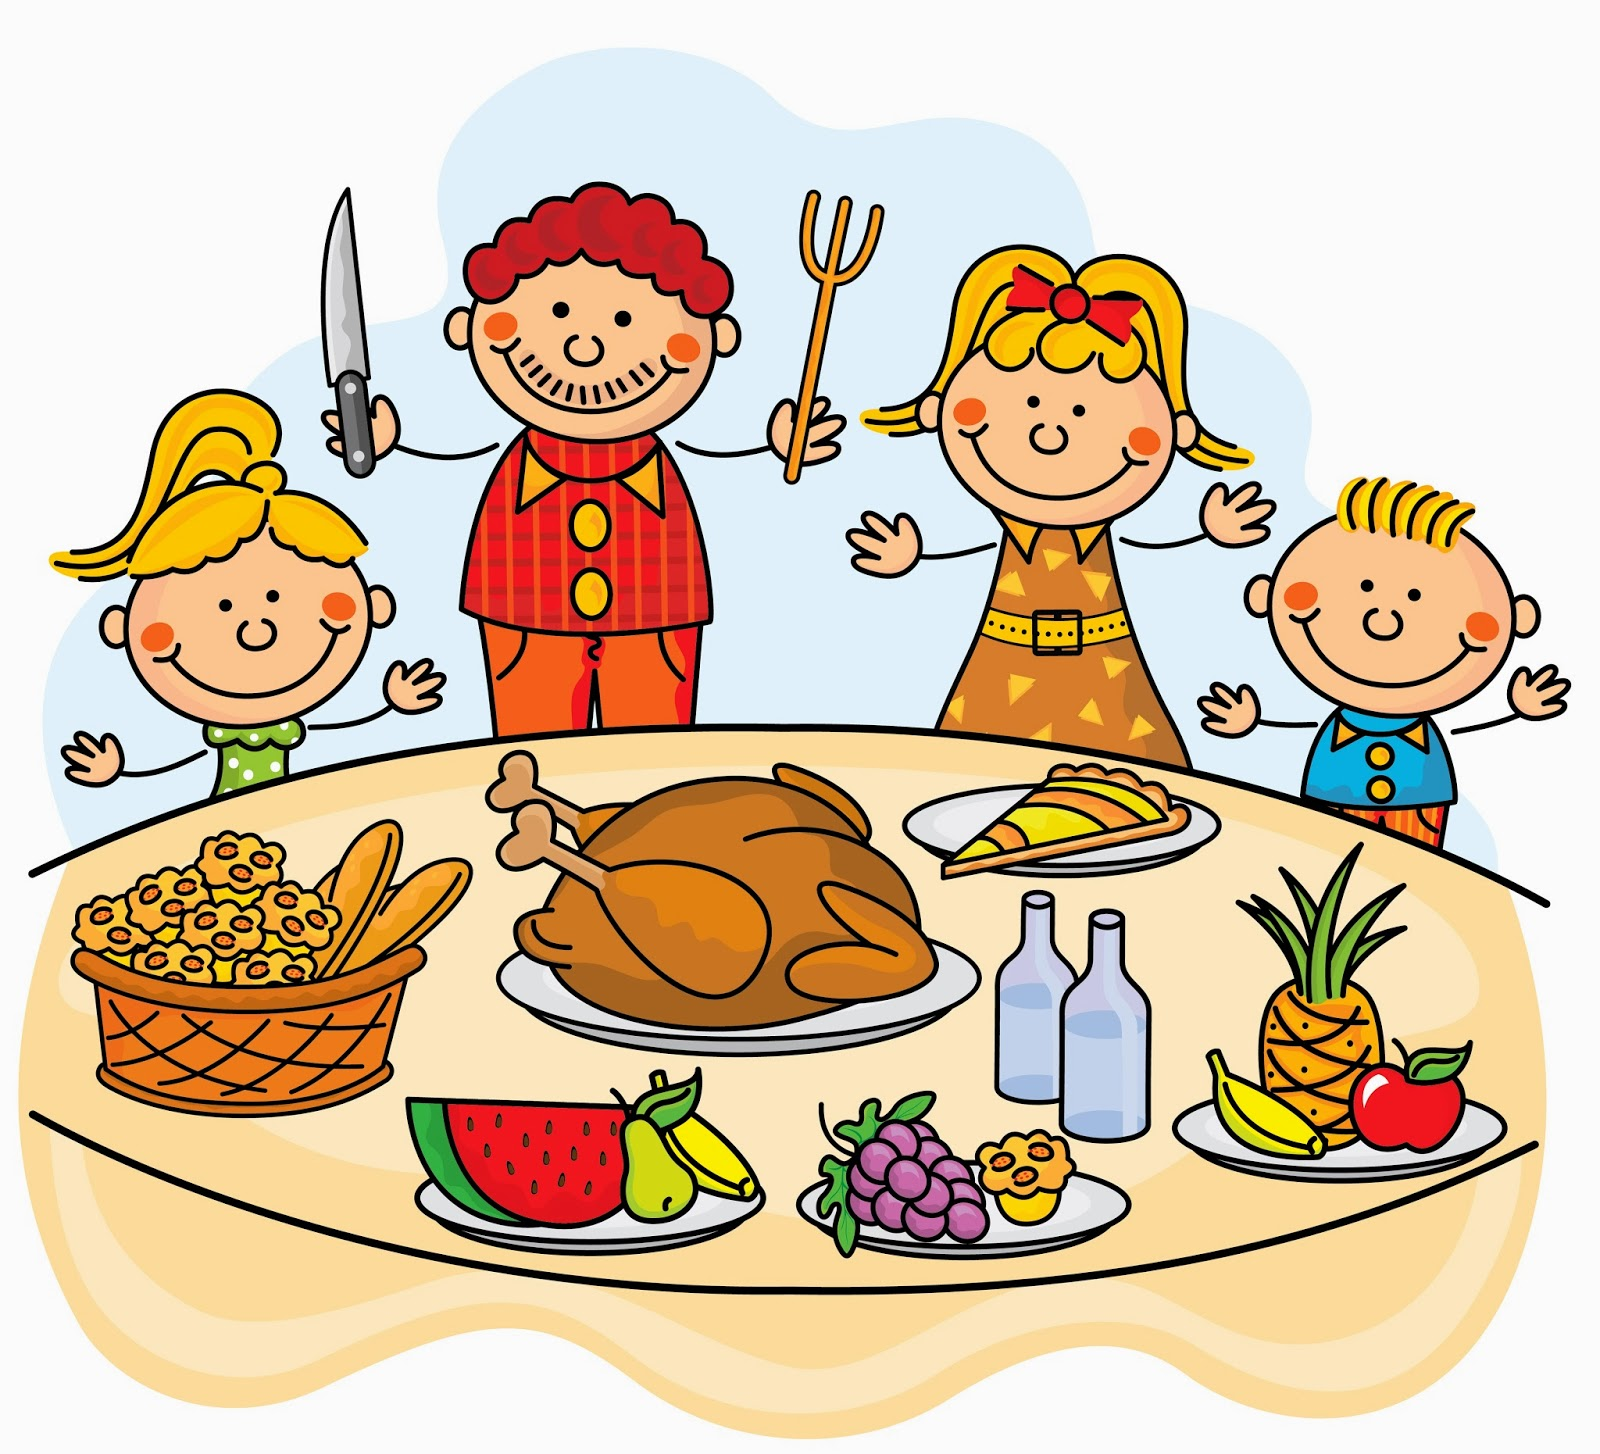 Holiday clipart holiday potluck - Pencil and in color holiday ...